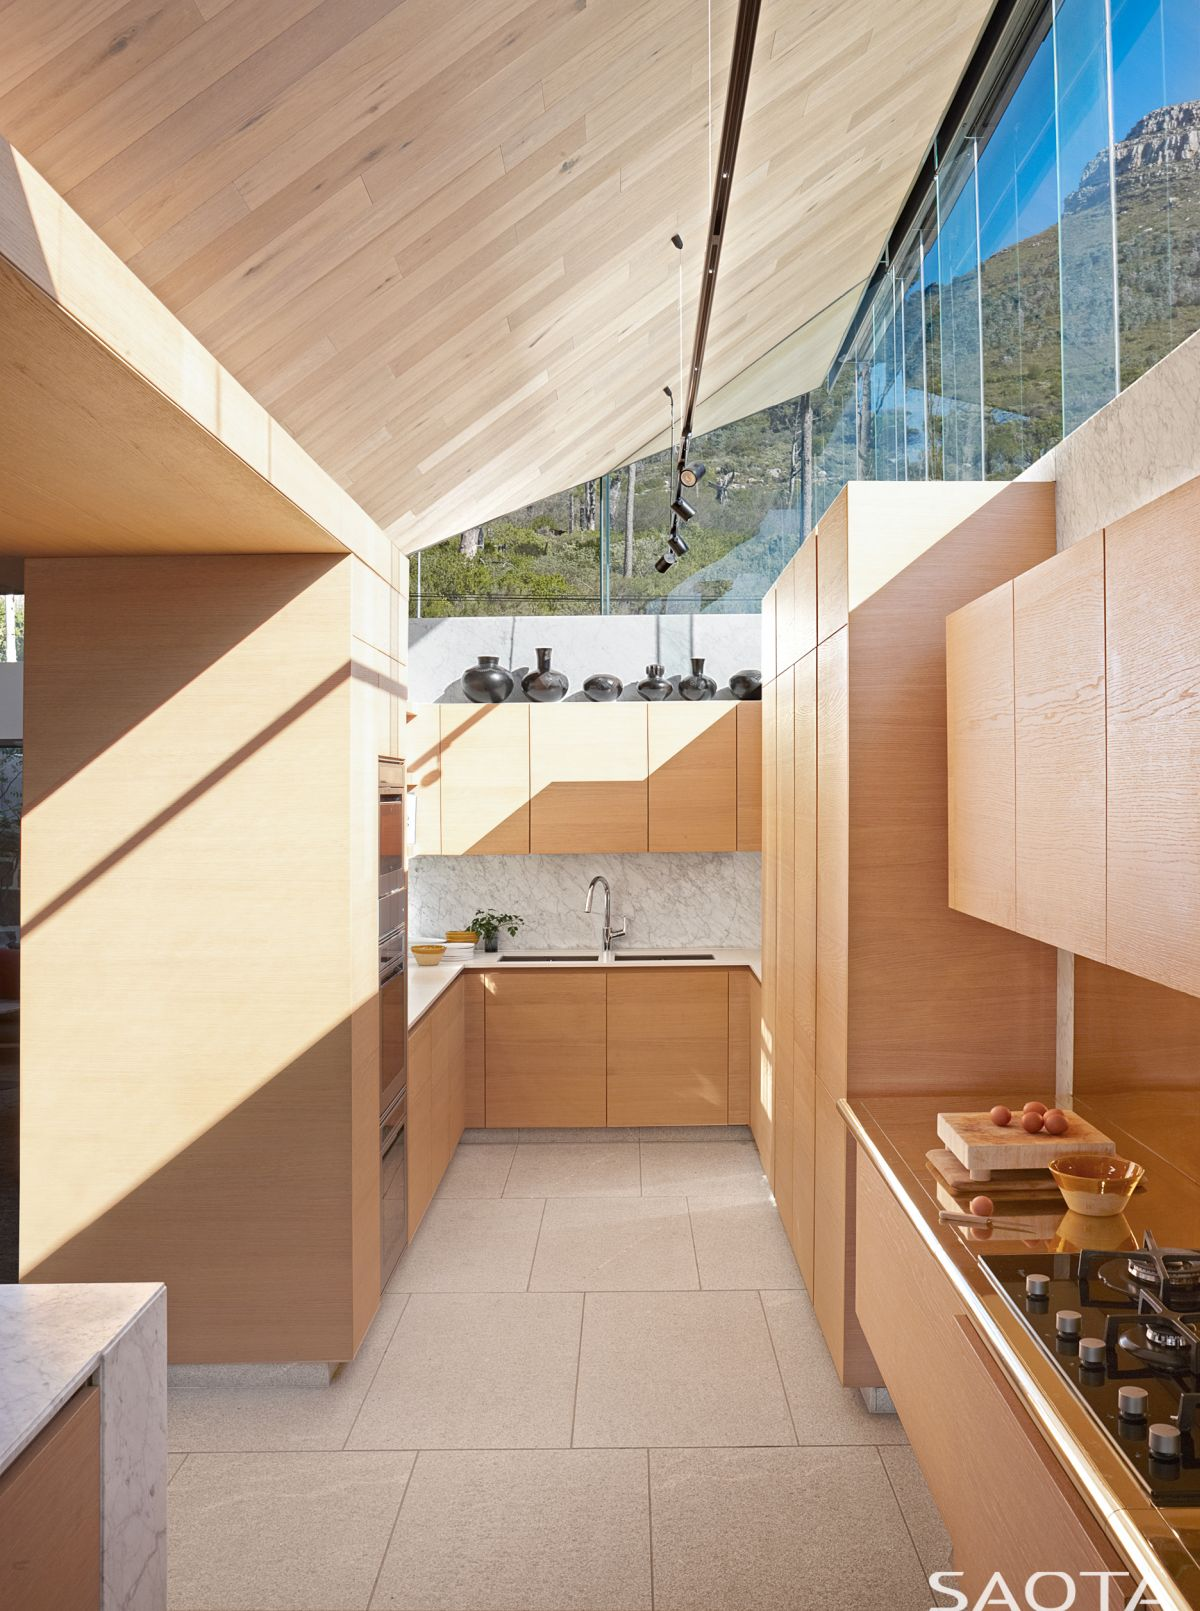 The kitchen, in spite of having an open floor plan, looks and feels like a separate, cozy nook